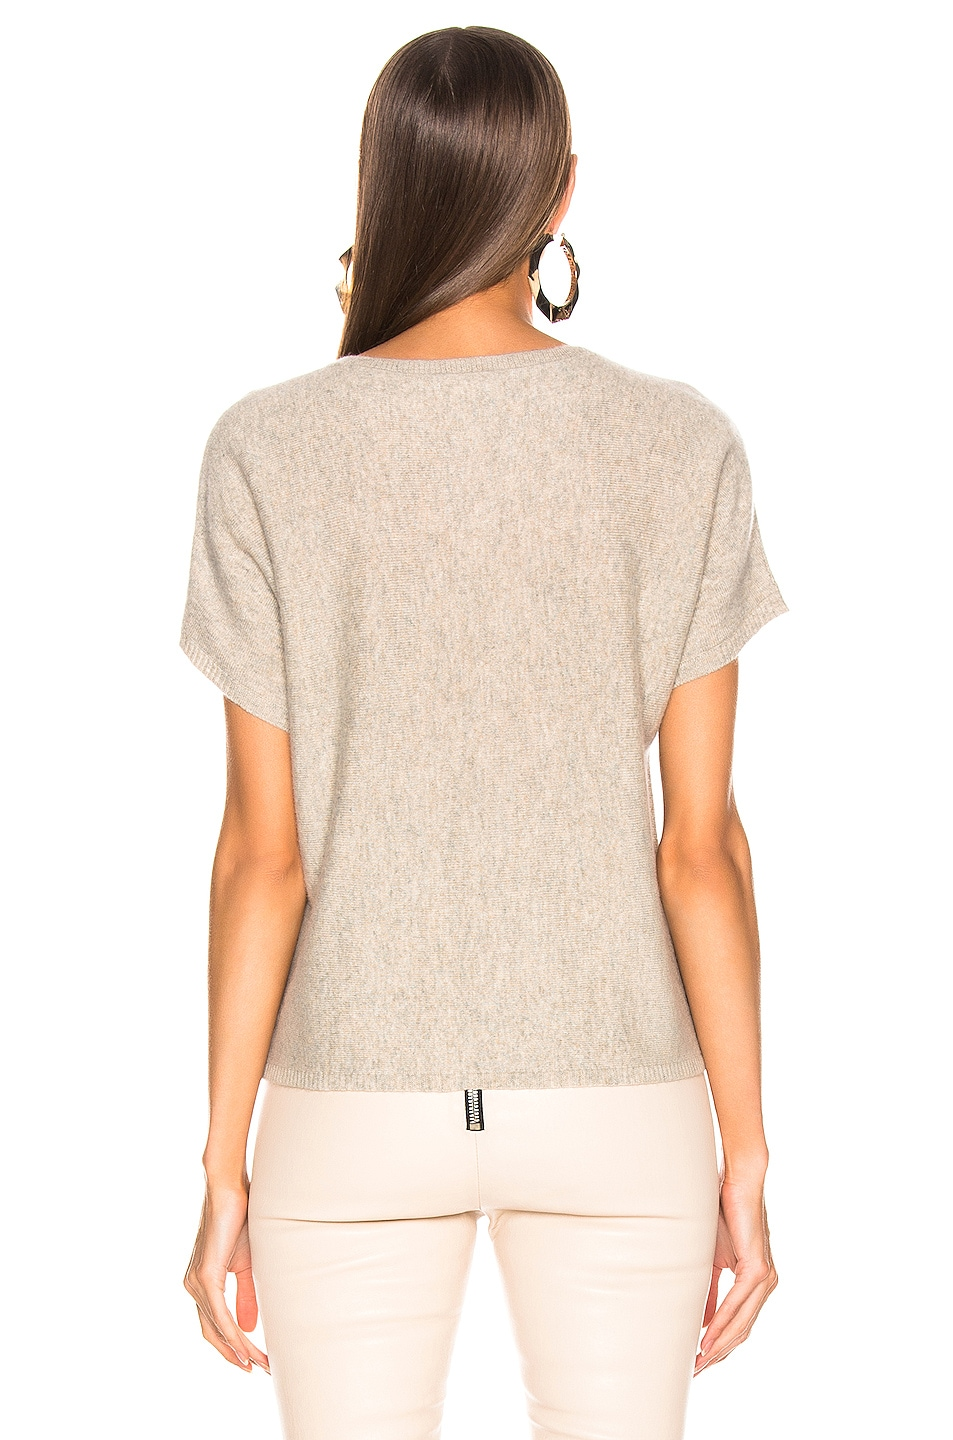 Image 3 of SABLYN London Top in Taupe